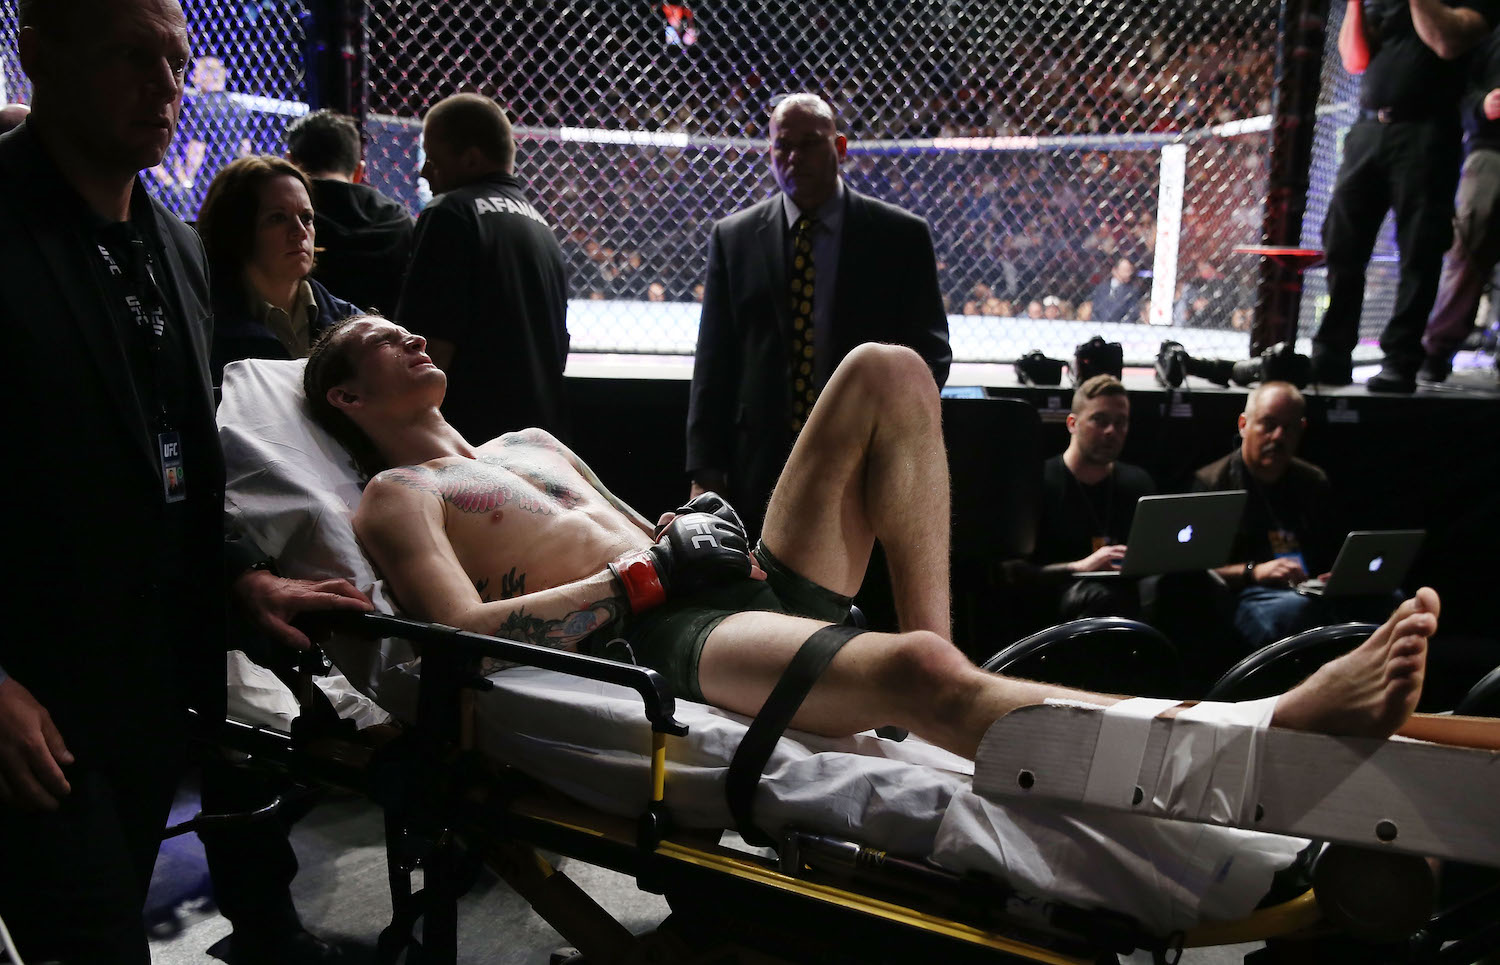 What Happened to UFC Fighter Sean O'Malley's Foot and Could His Career Be Over?